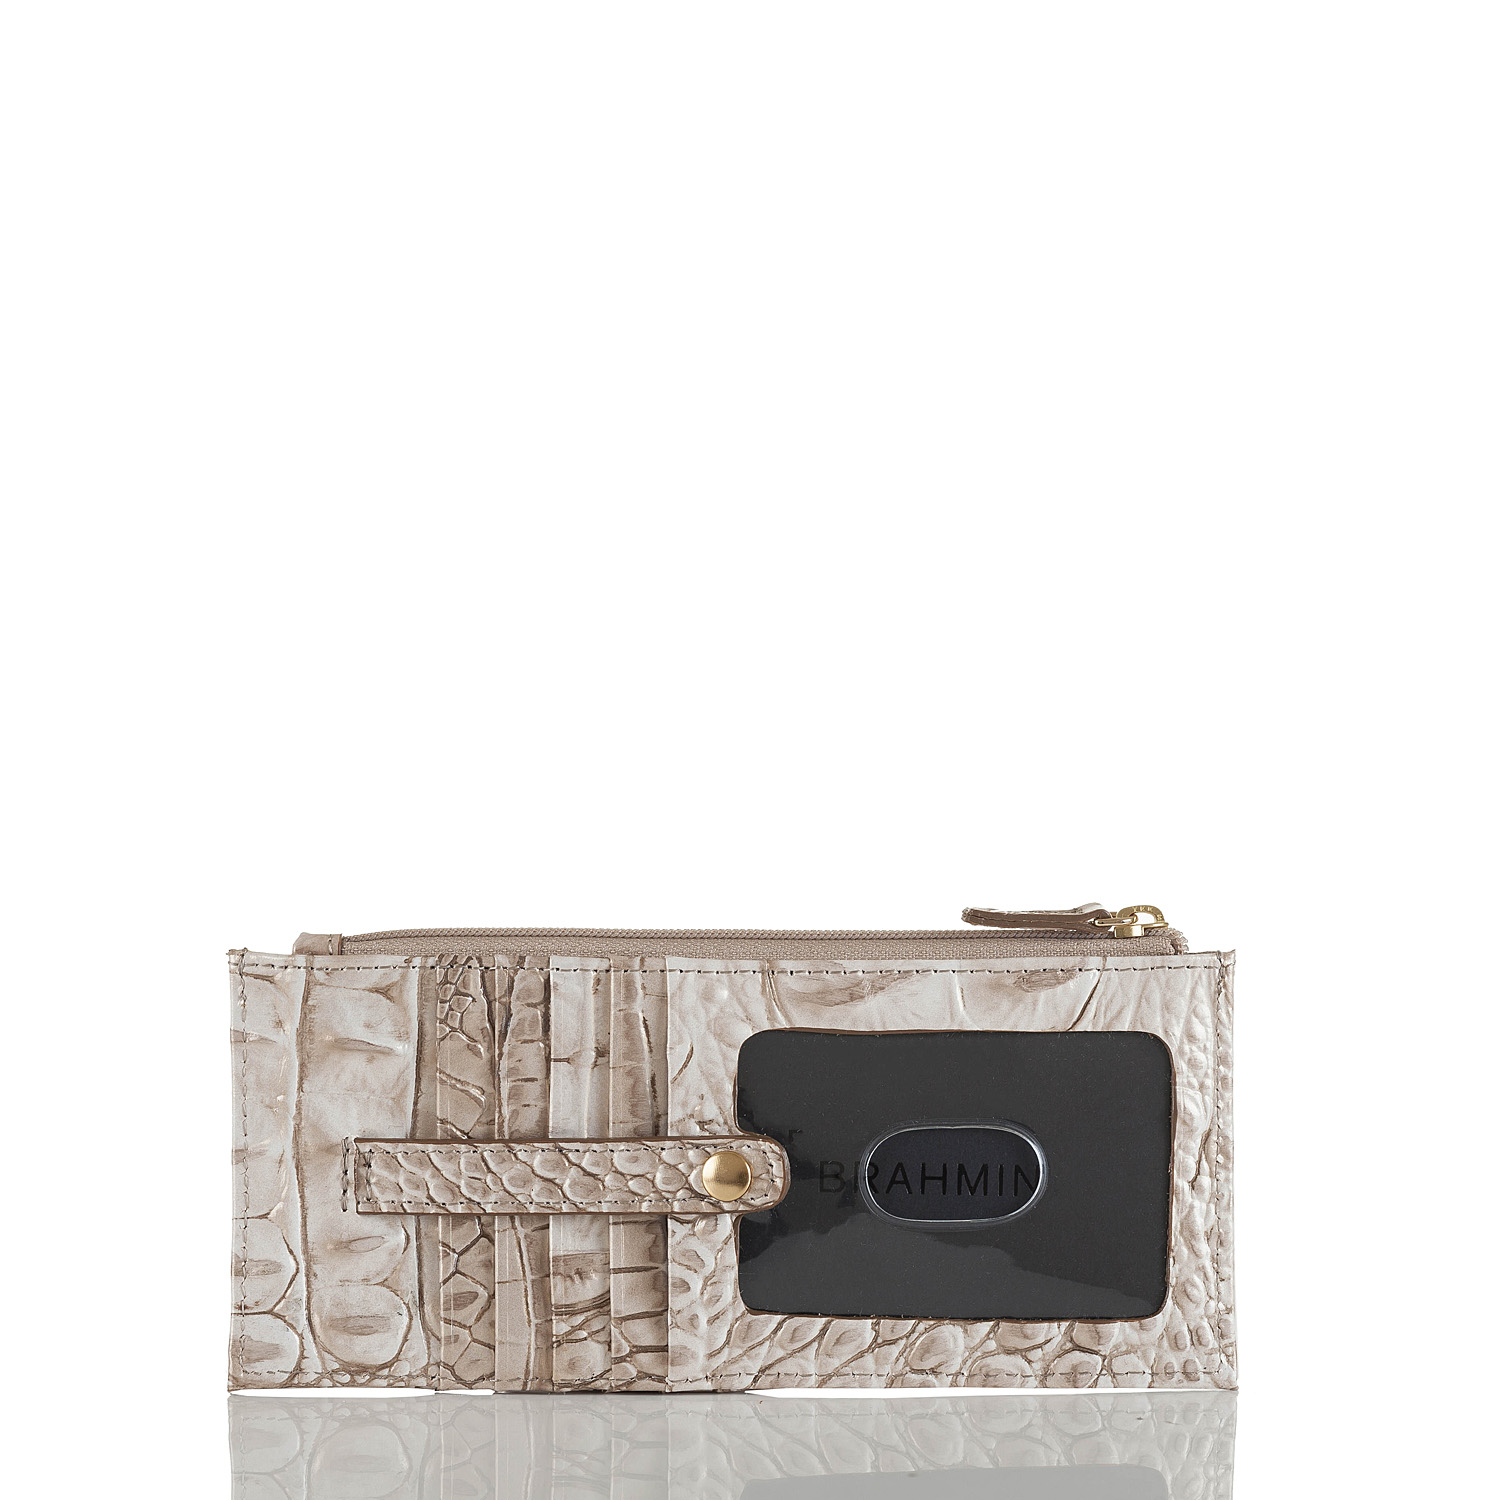 Credit Card Wallet Sugar Cane Melbourne